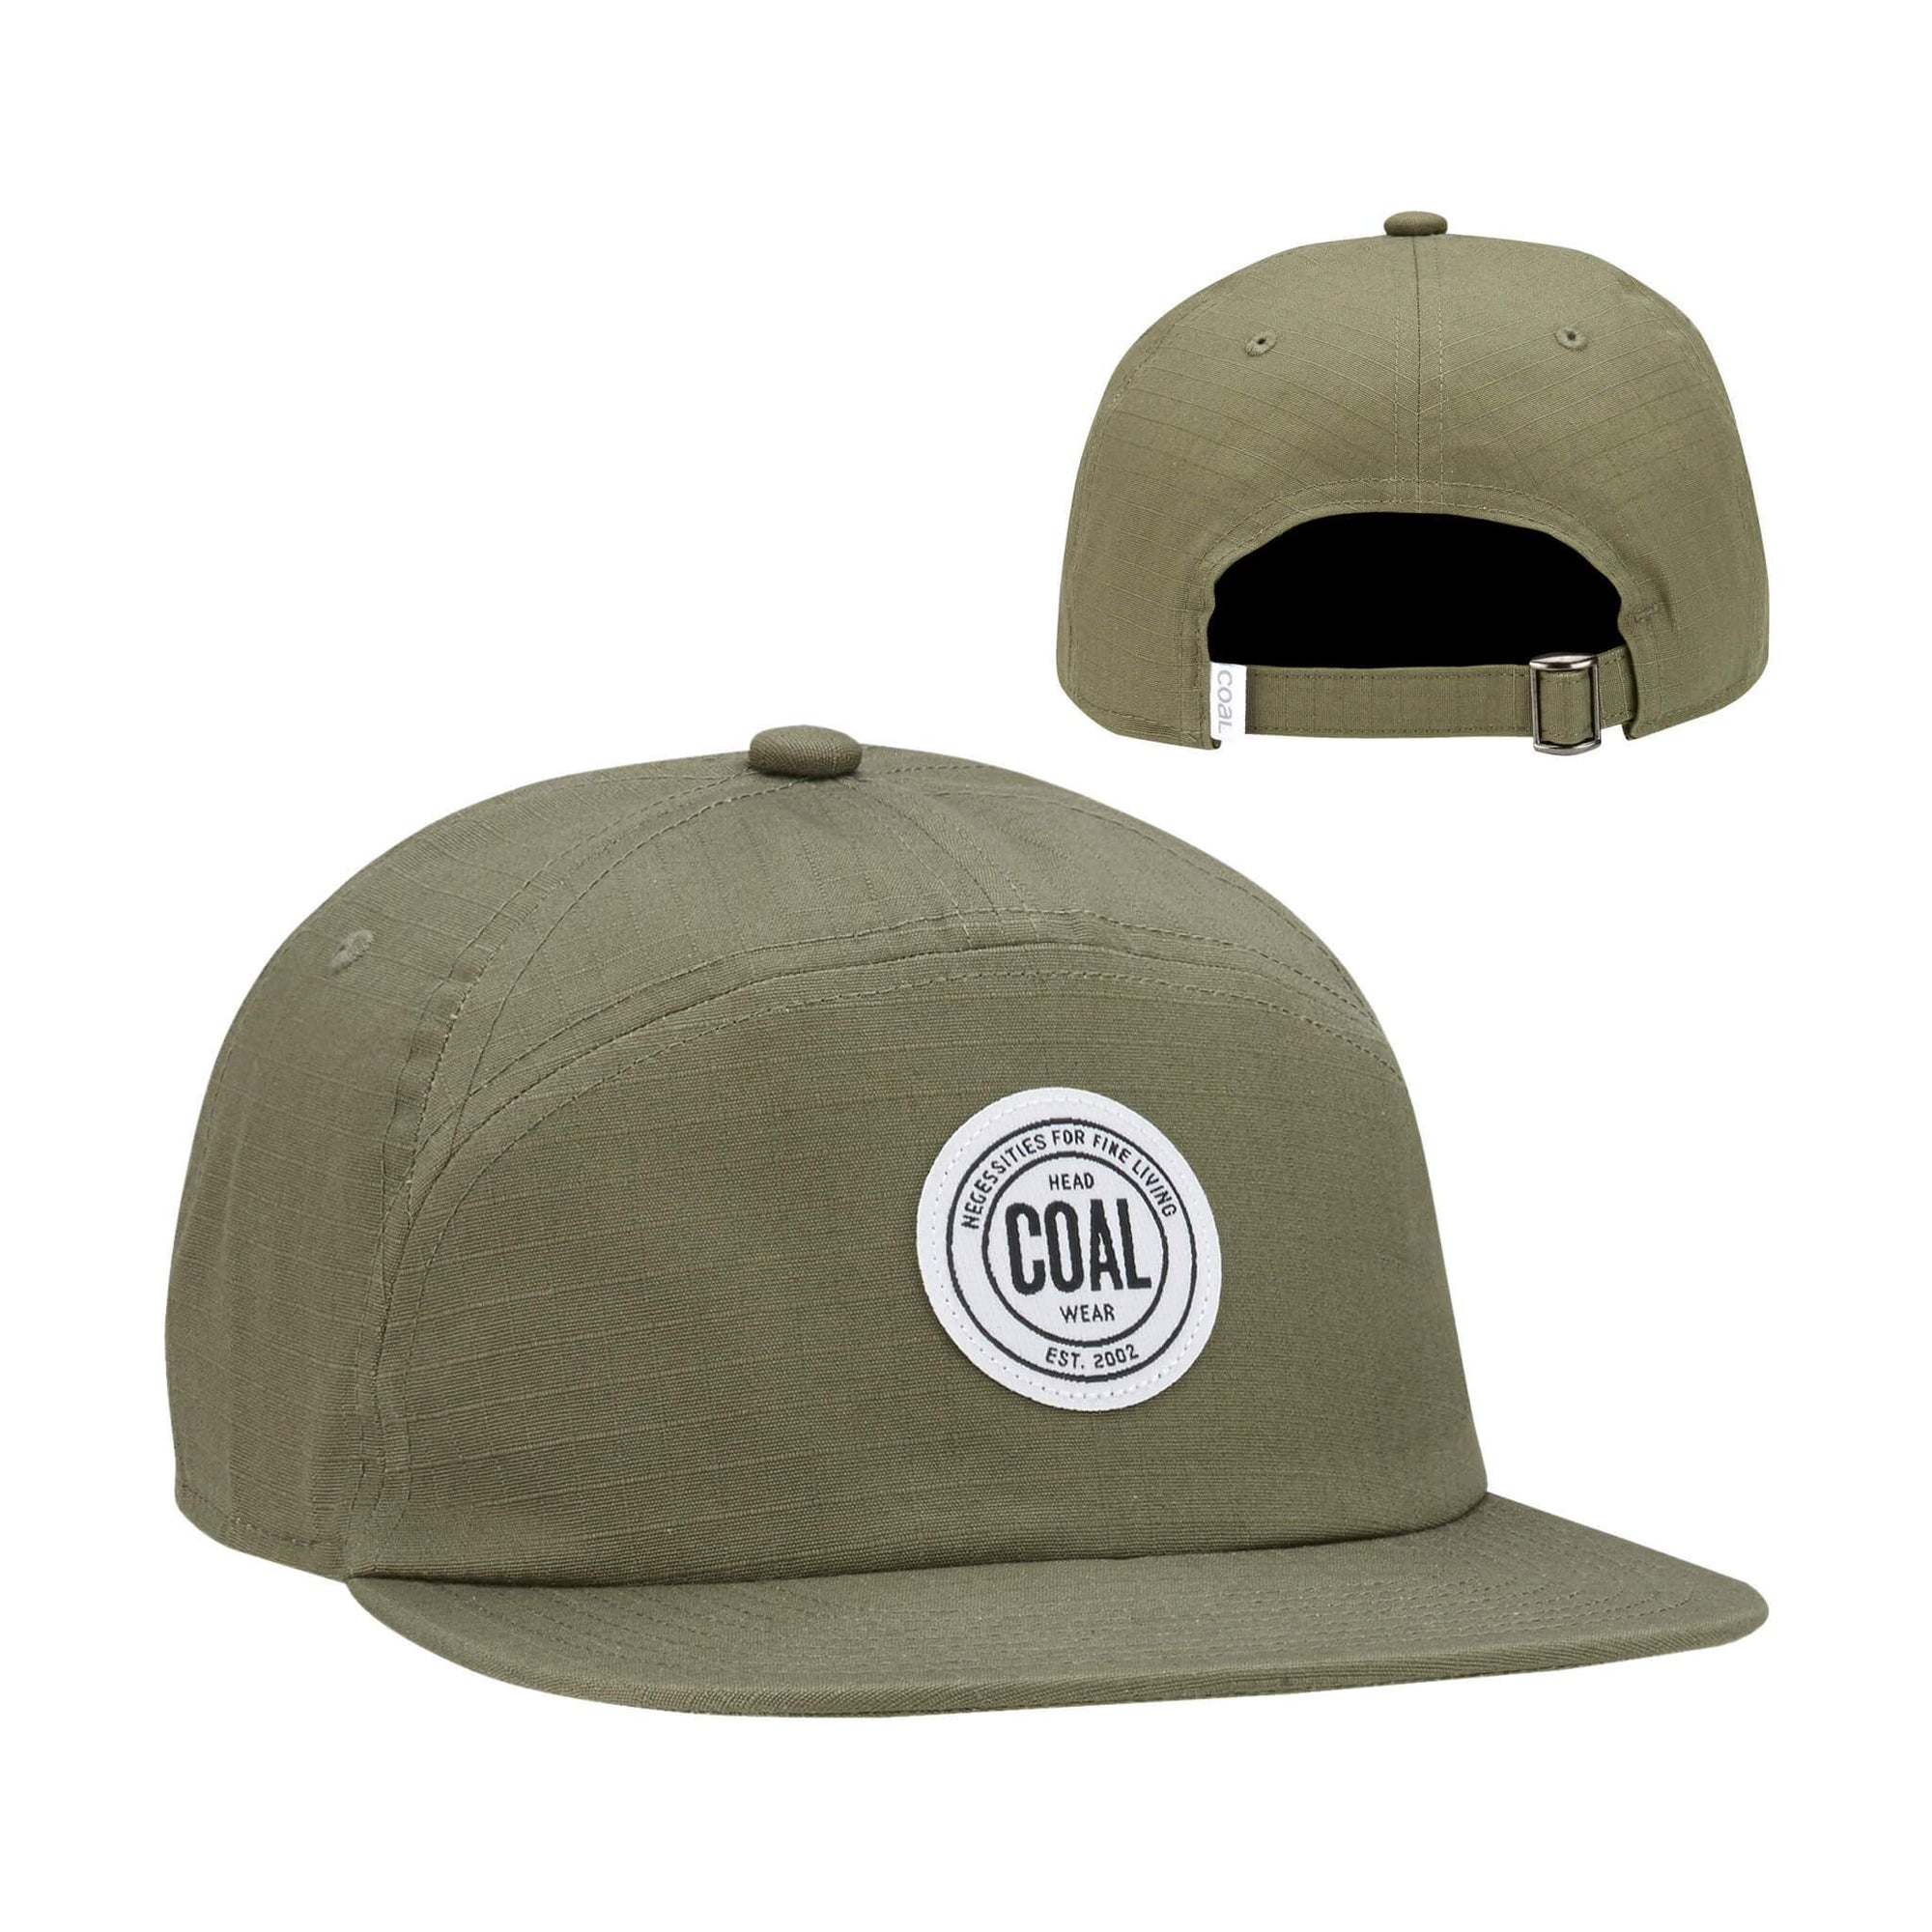 Coal Headwear The Hayes Hat - Olive - Chane 96a1354ad3a